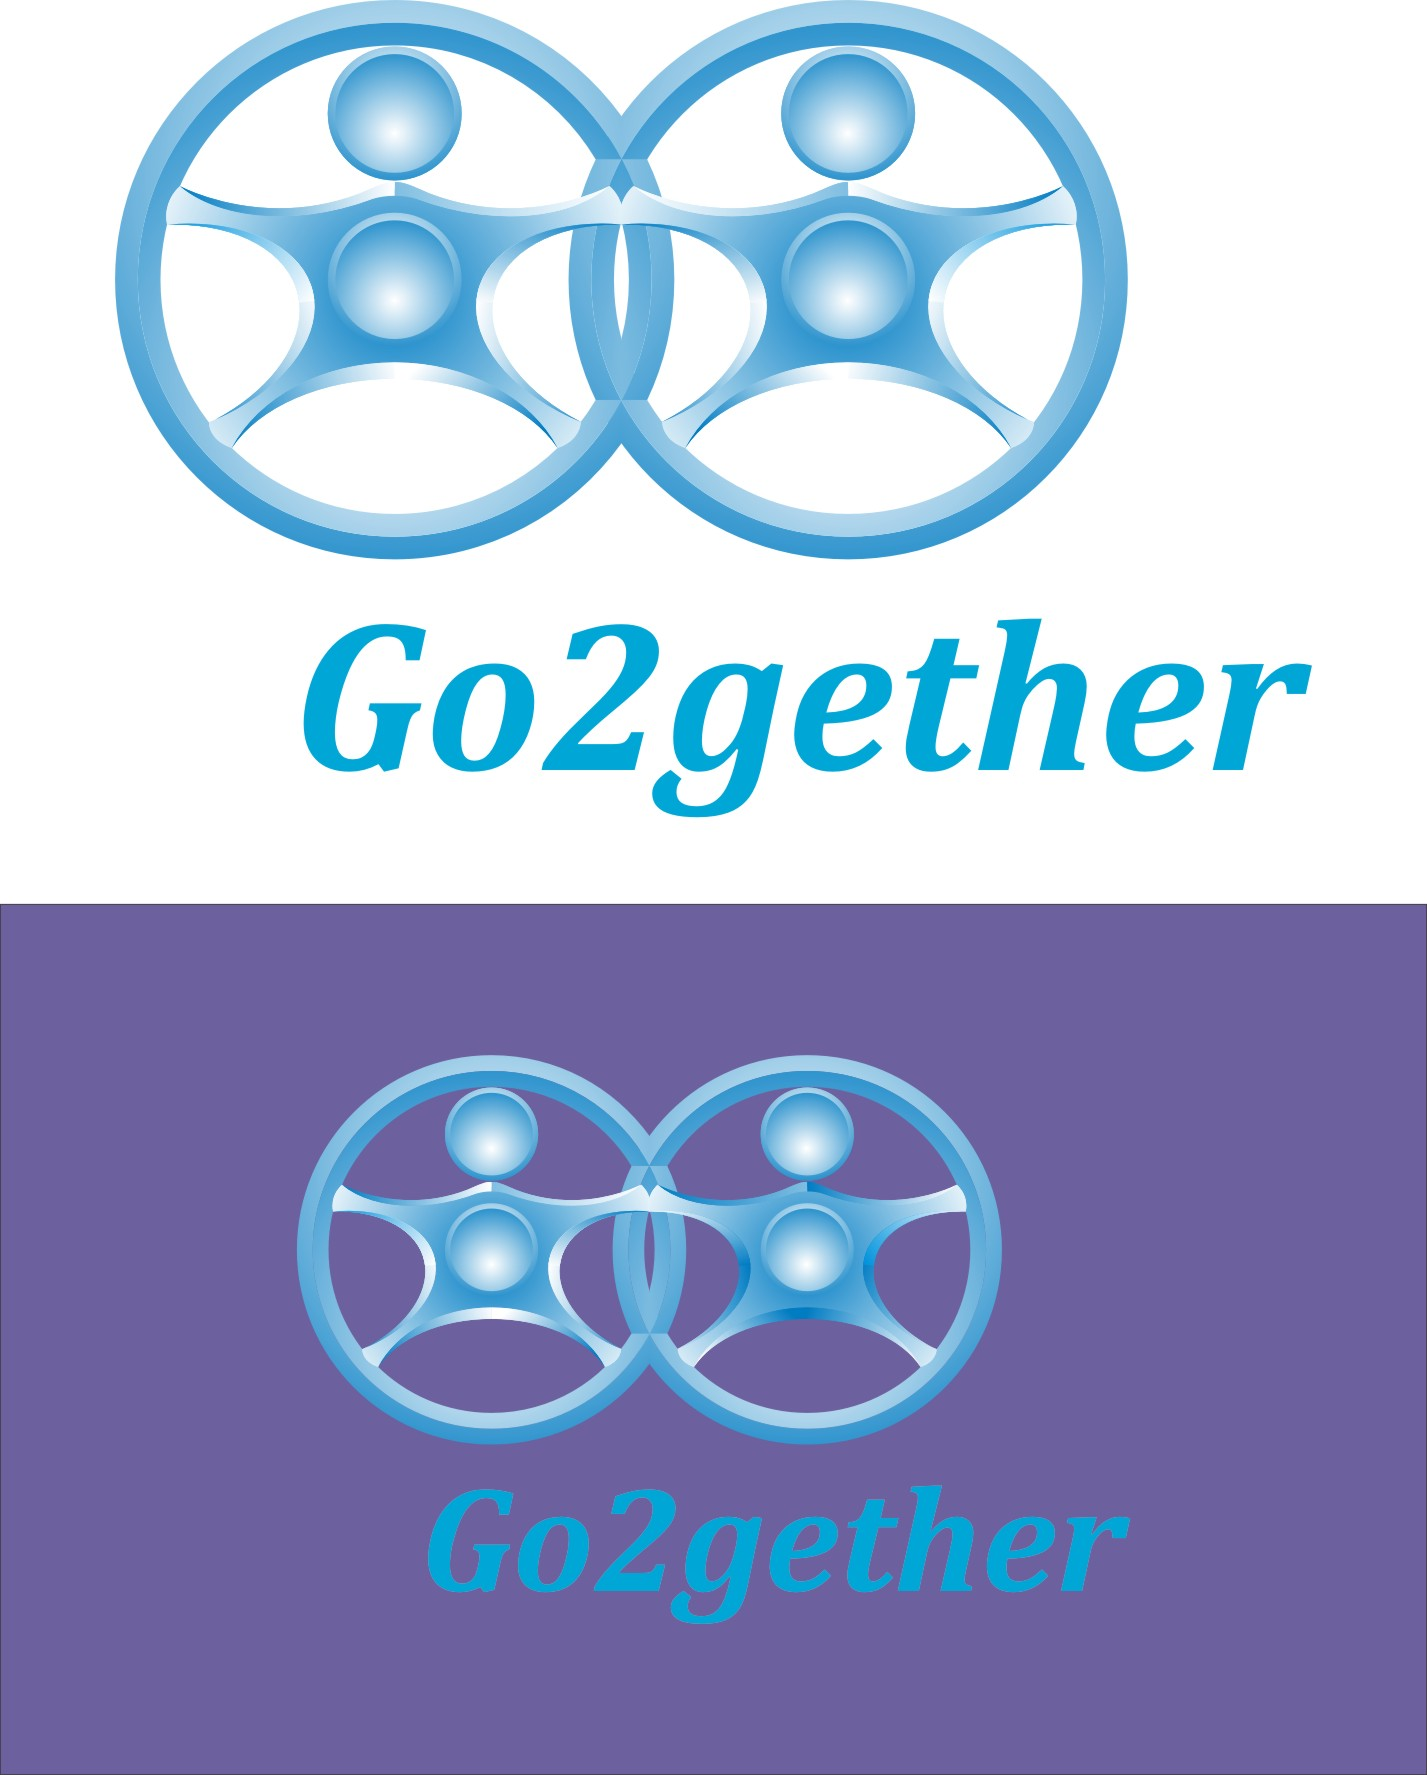 Logo Design by Korsunov Oleg - Entry No. 26 in the Logo Design Contest Captivating Logo Design for GO2GETHER.